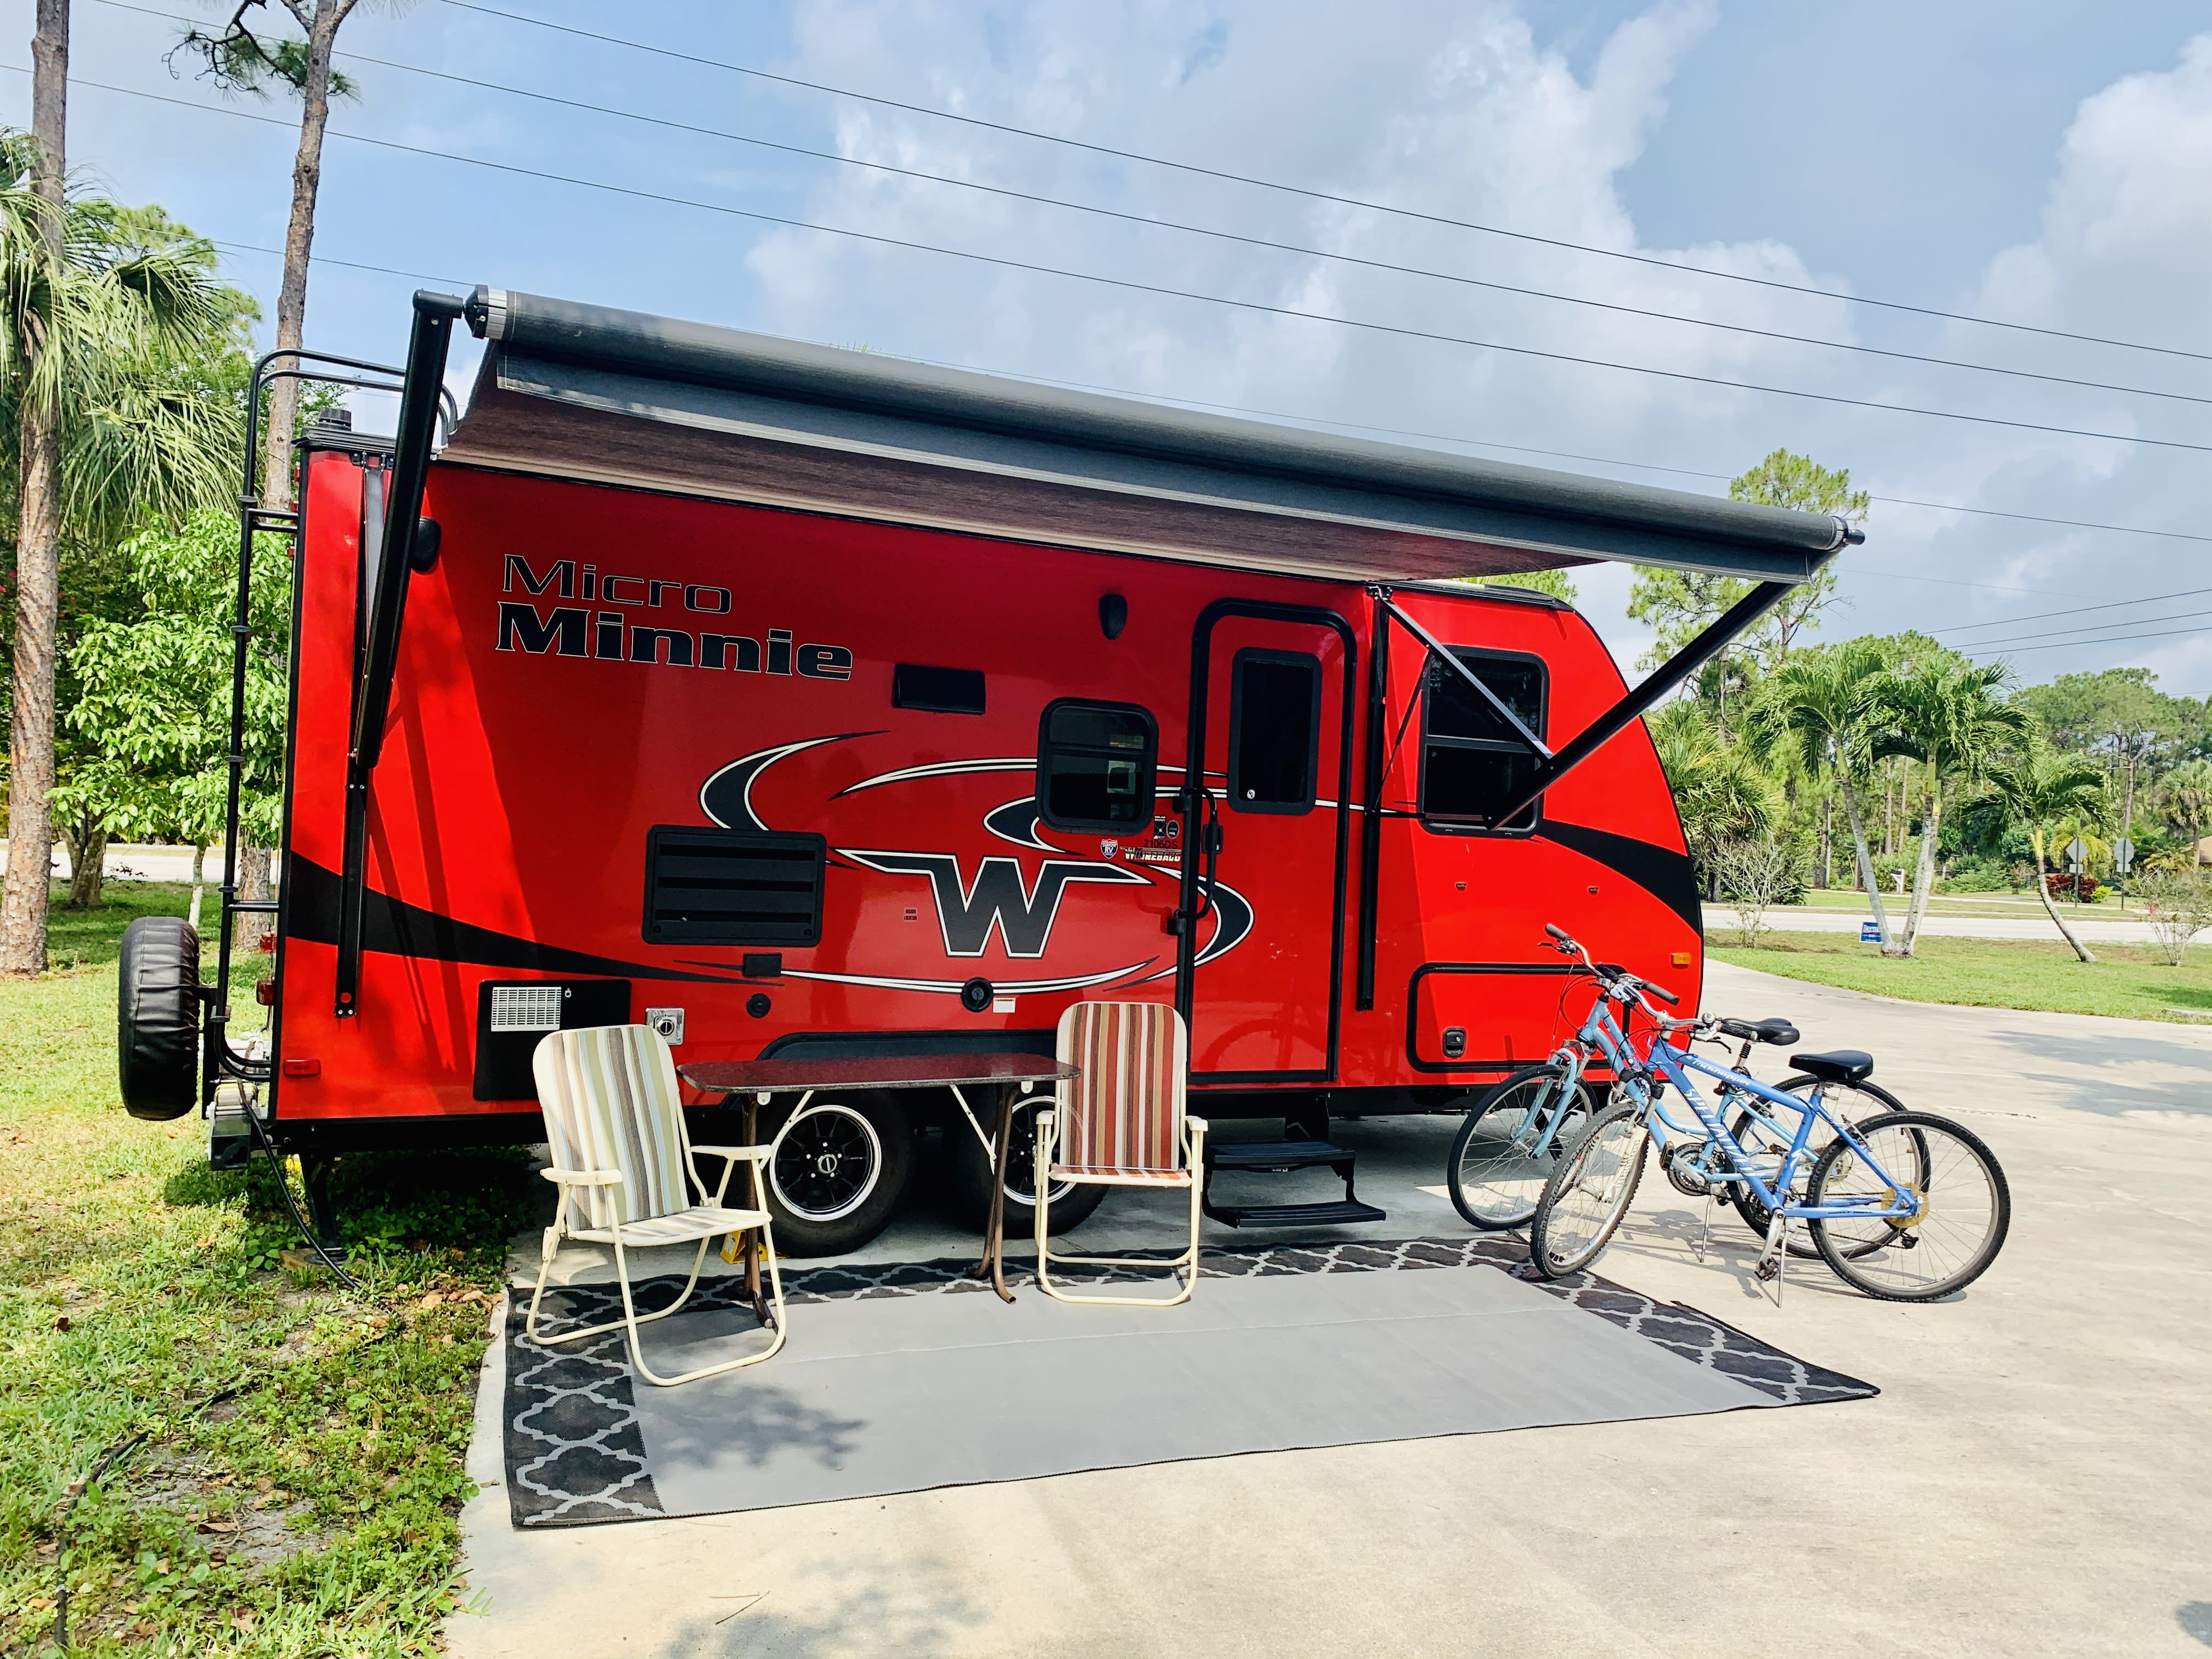 Standard campsite set up. Winnebago Micro Minnie 2018